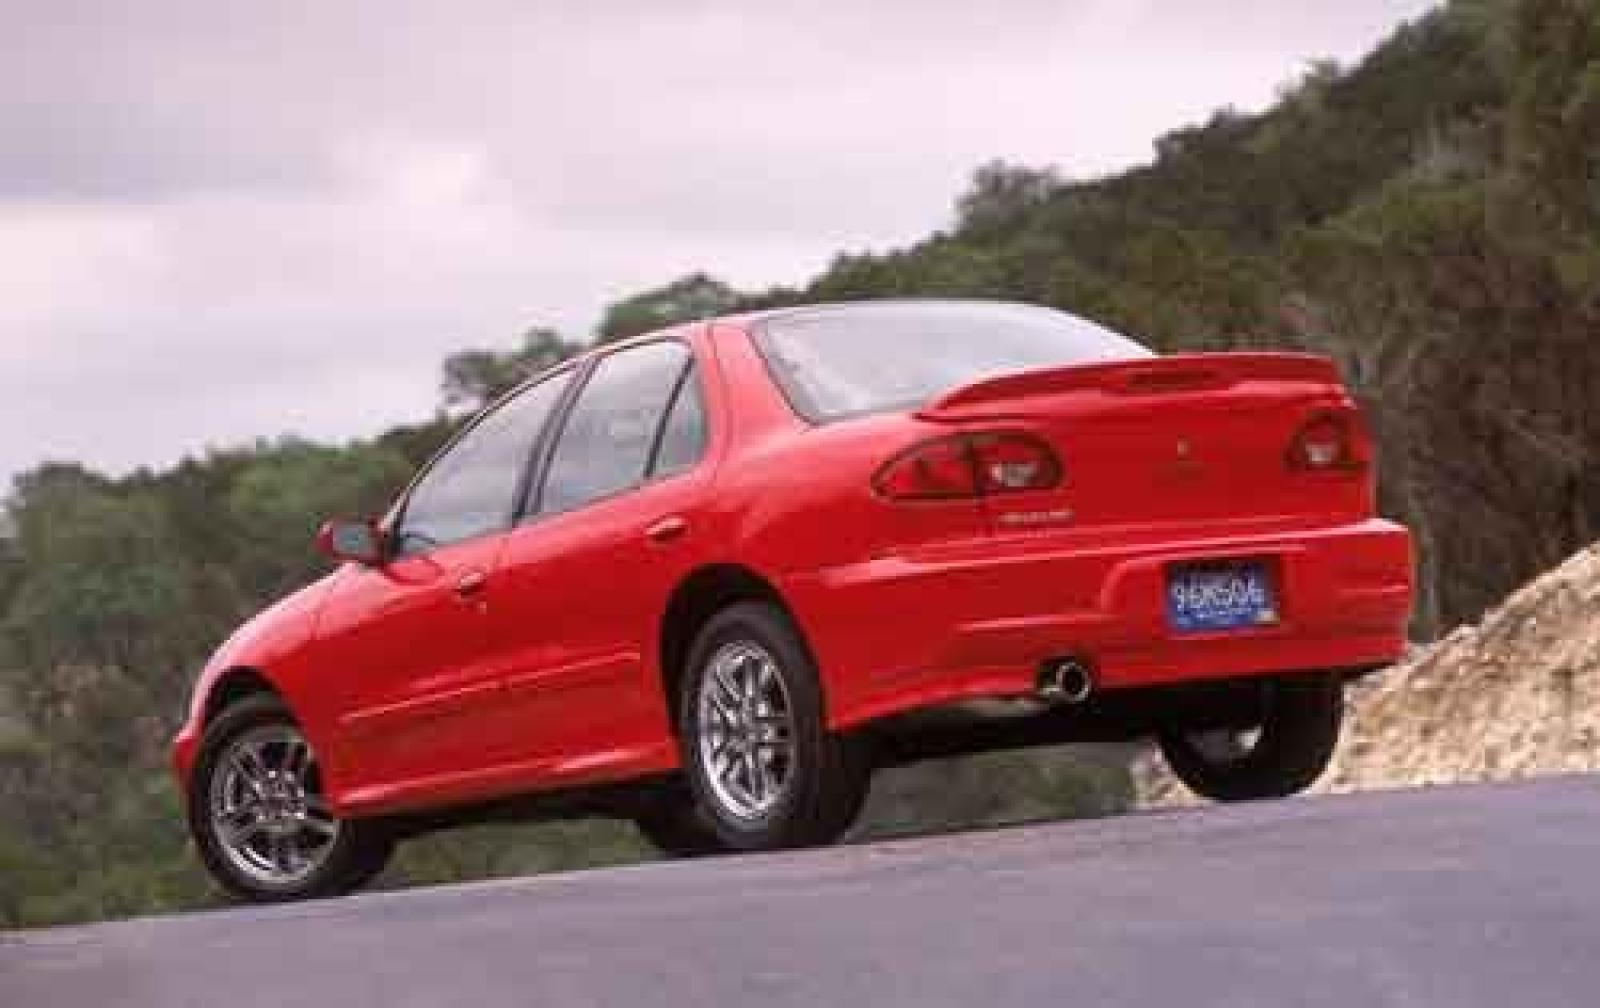 2002 chevrolet cavalier information and photos zombiedrive. Cars Review. Best American Auto & Cars Review